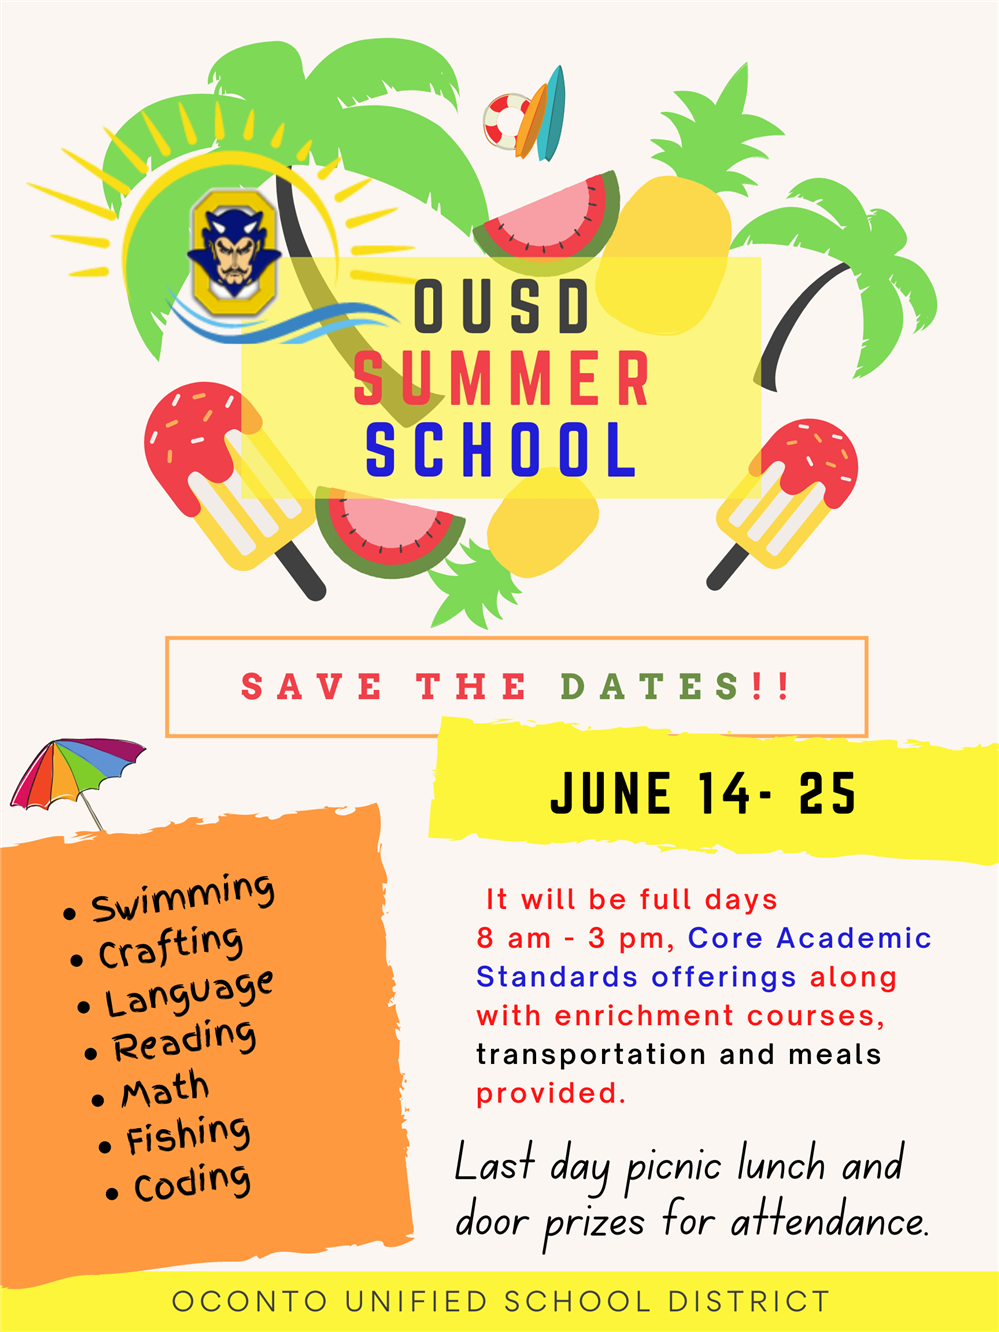 OUSD Academic and Enrichment  Summer School 2021!